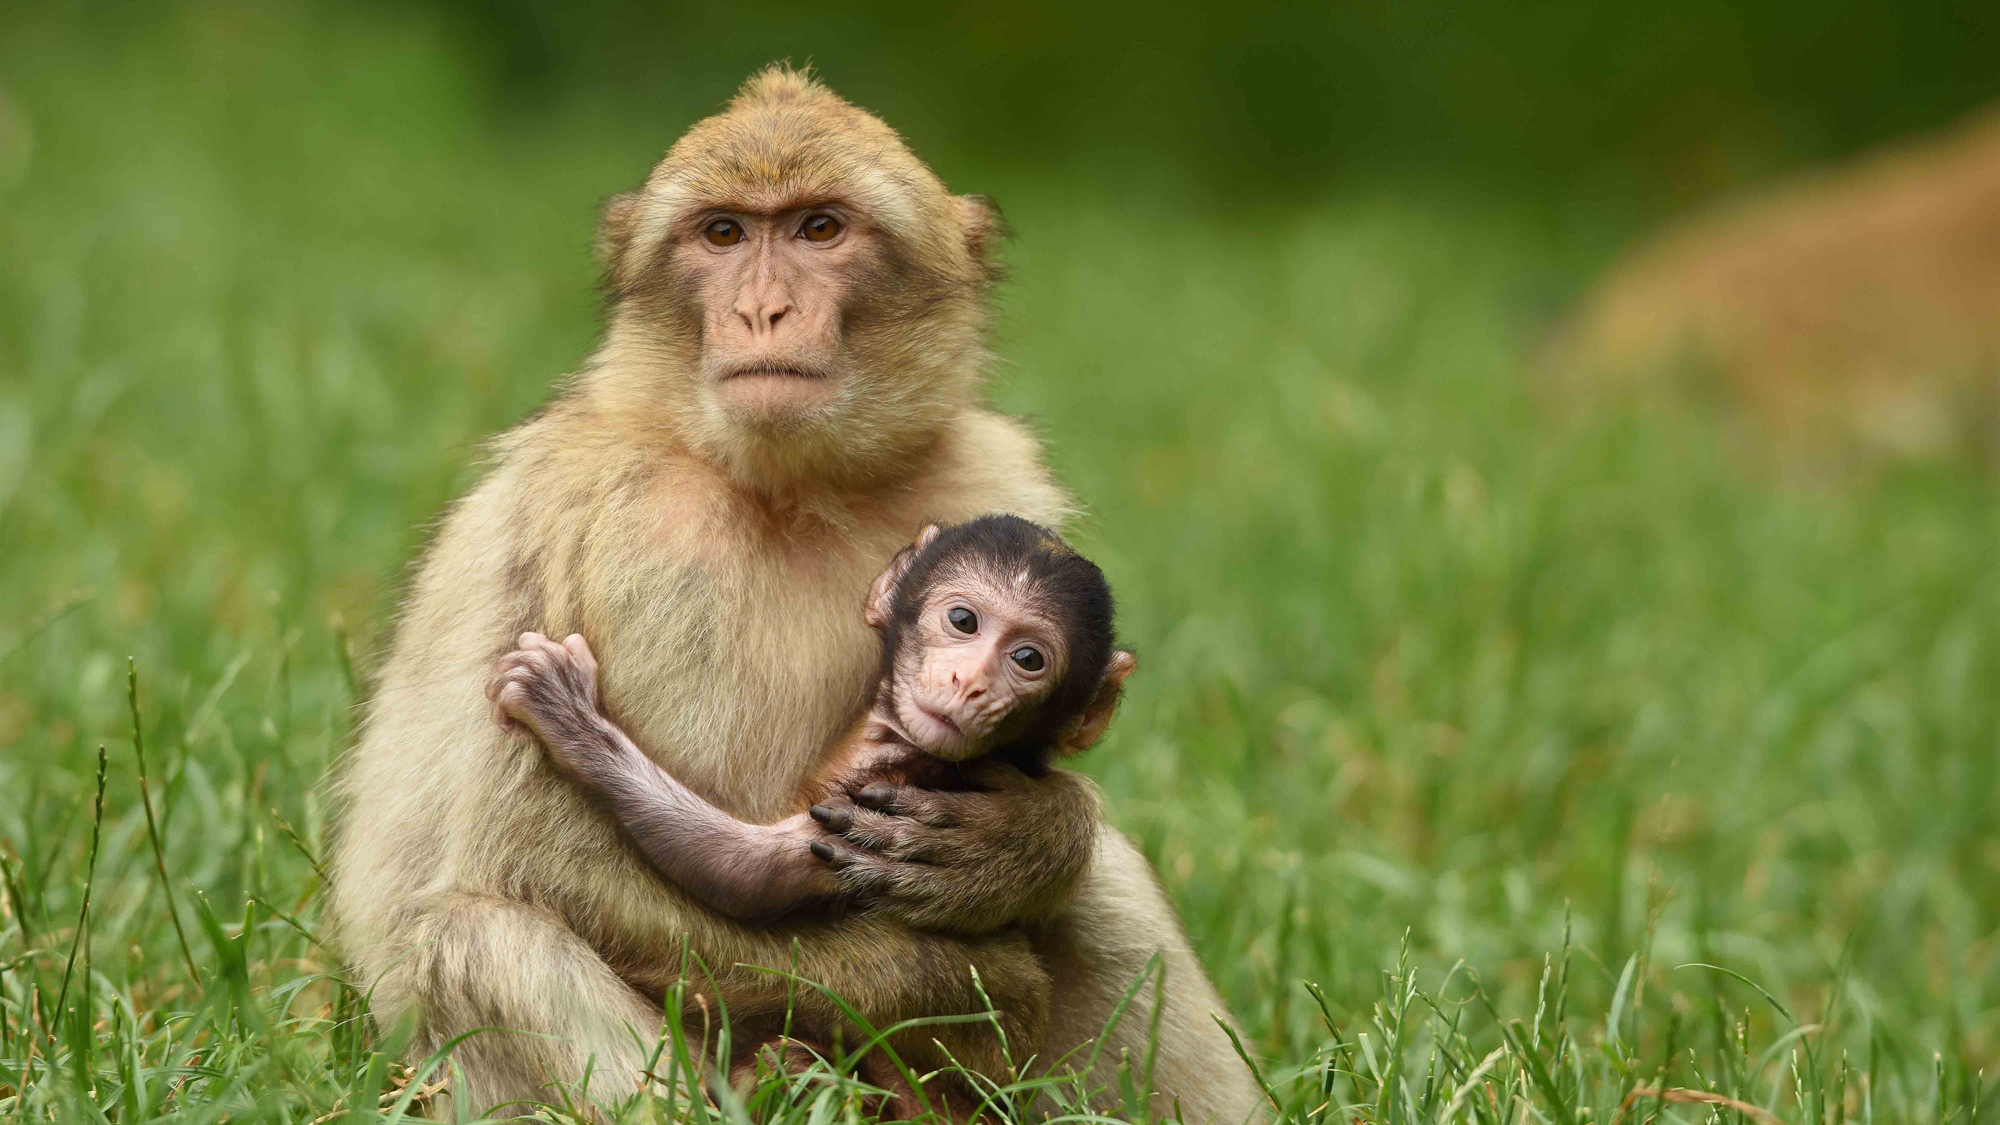 Mother And Baby Monkey Hd Wallpaper Background Image 2000x1125 Images, Photos, Reviews